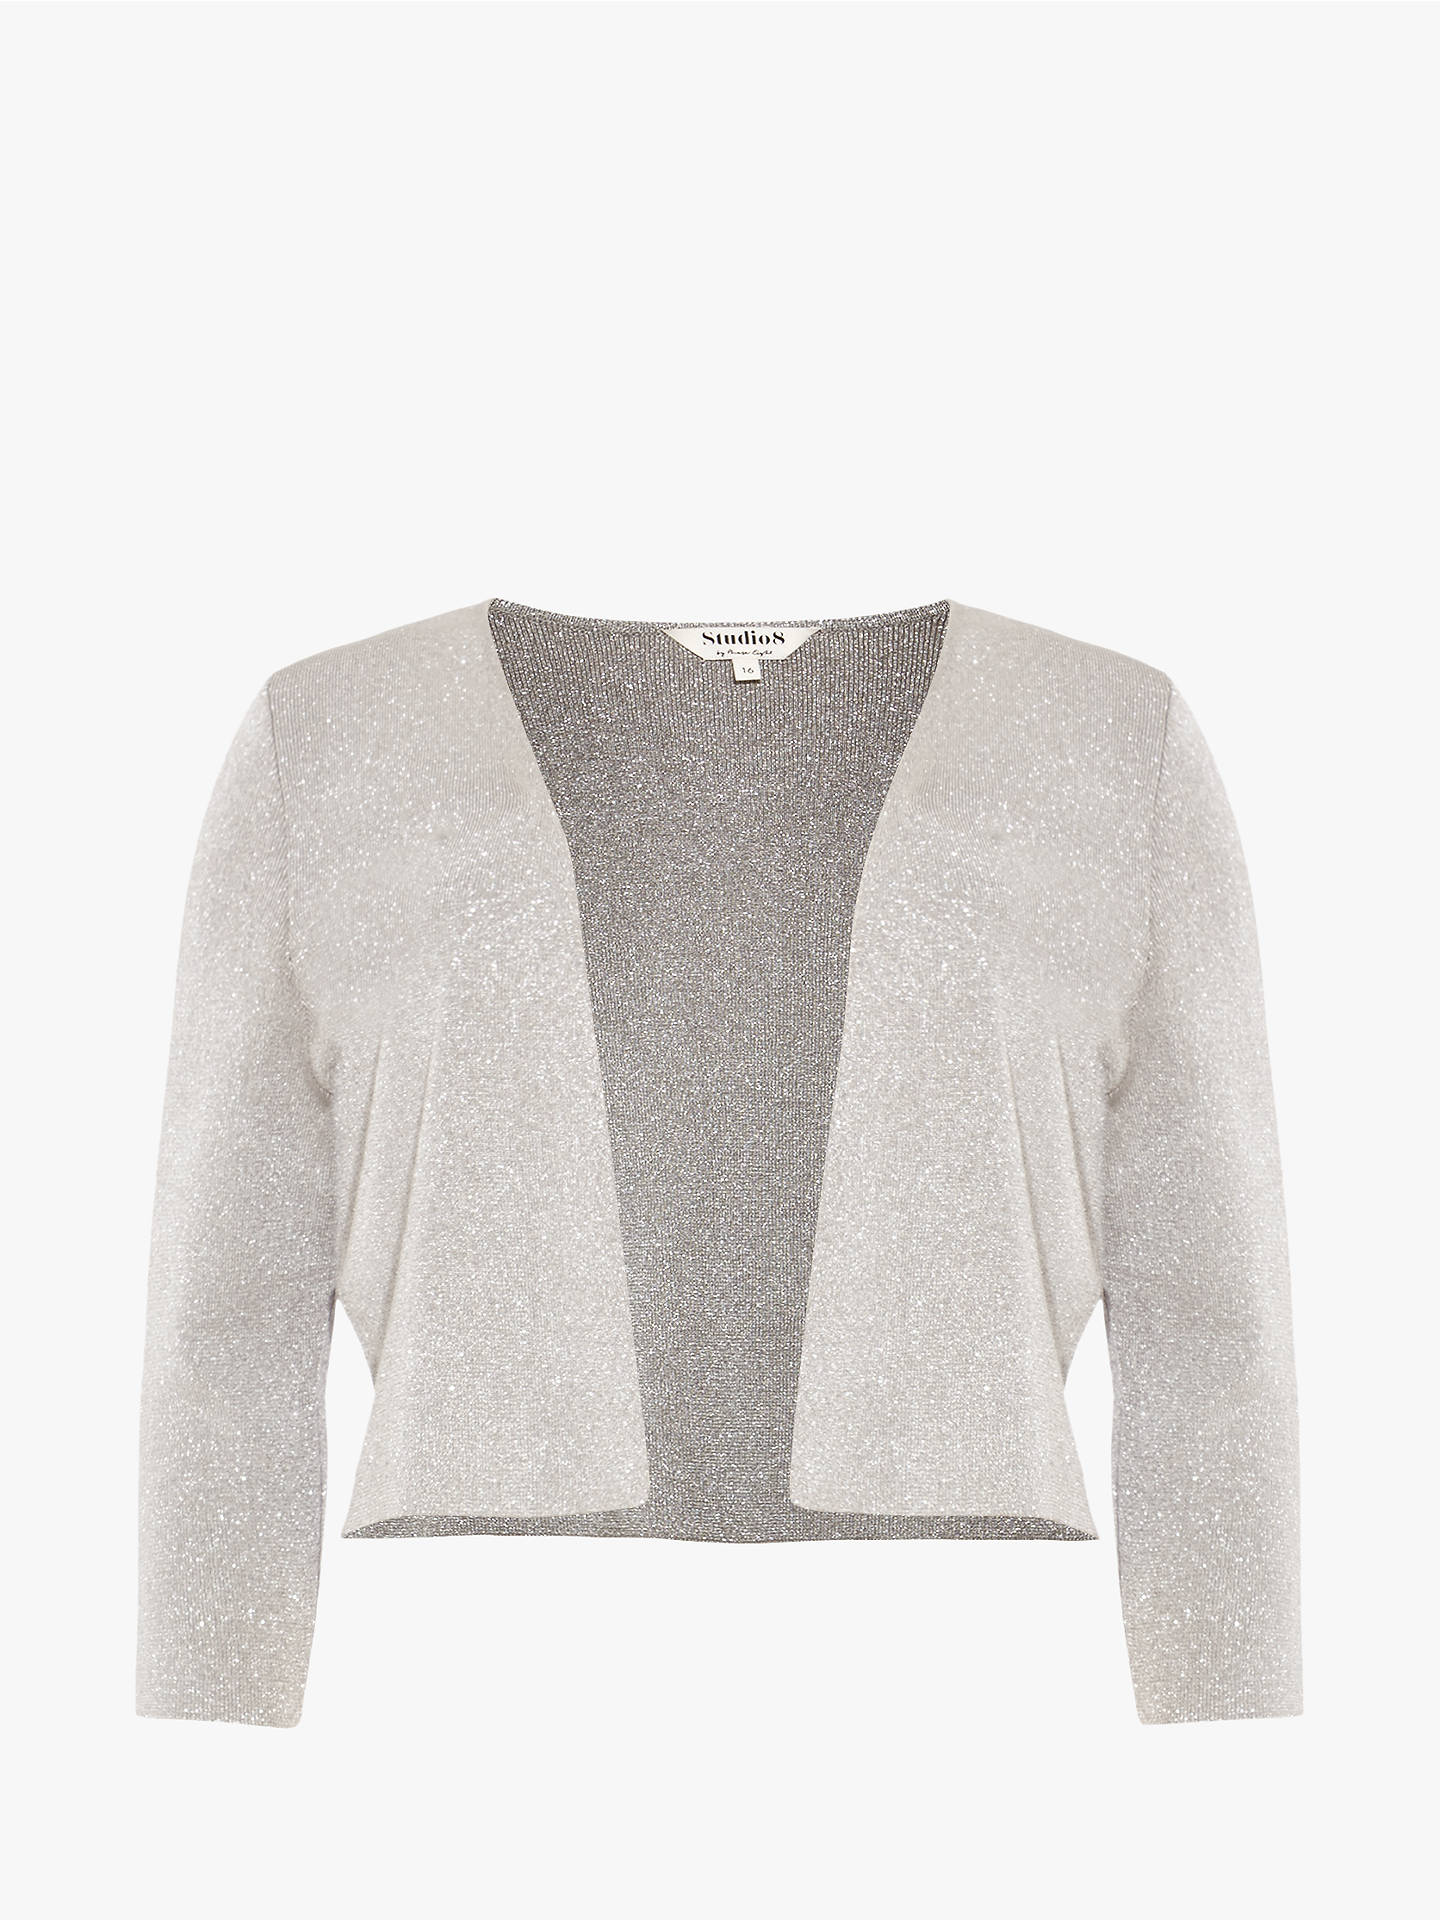 Buy Studio 8 Carrie Cover Up Knit Cardigan, Silver, 22 Online at johnlewis.com